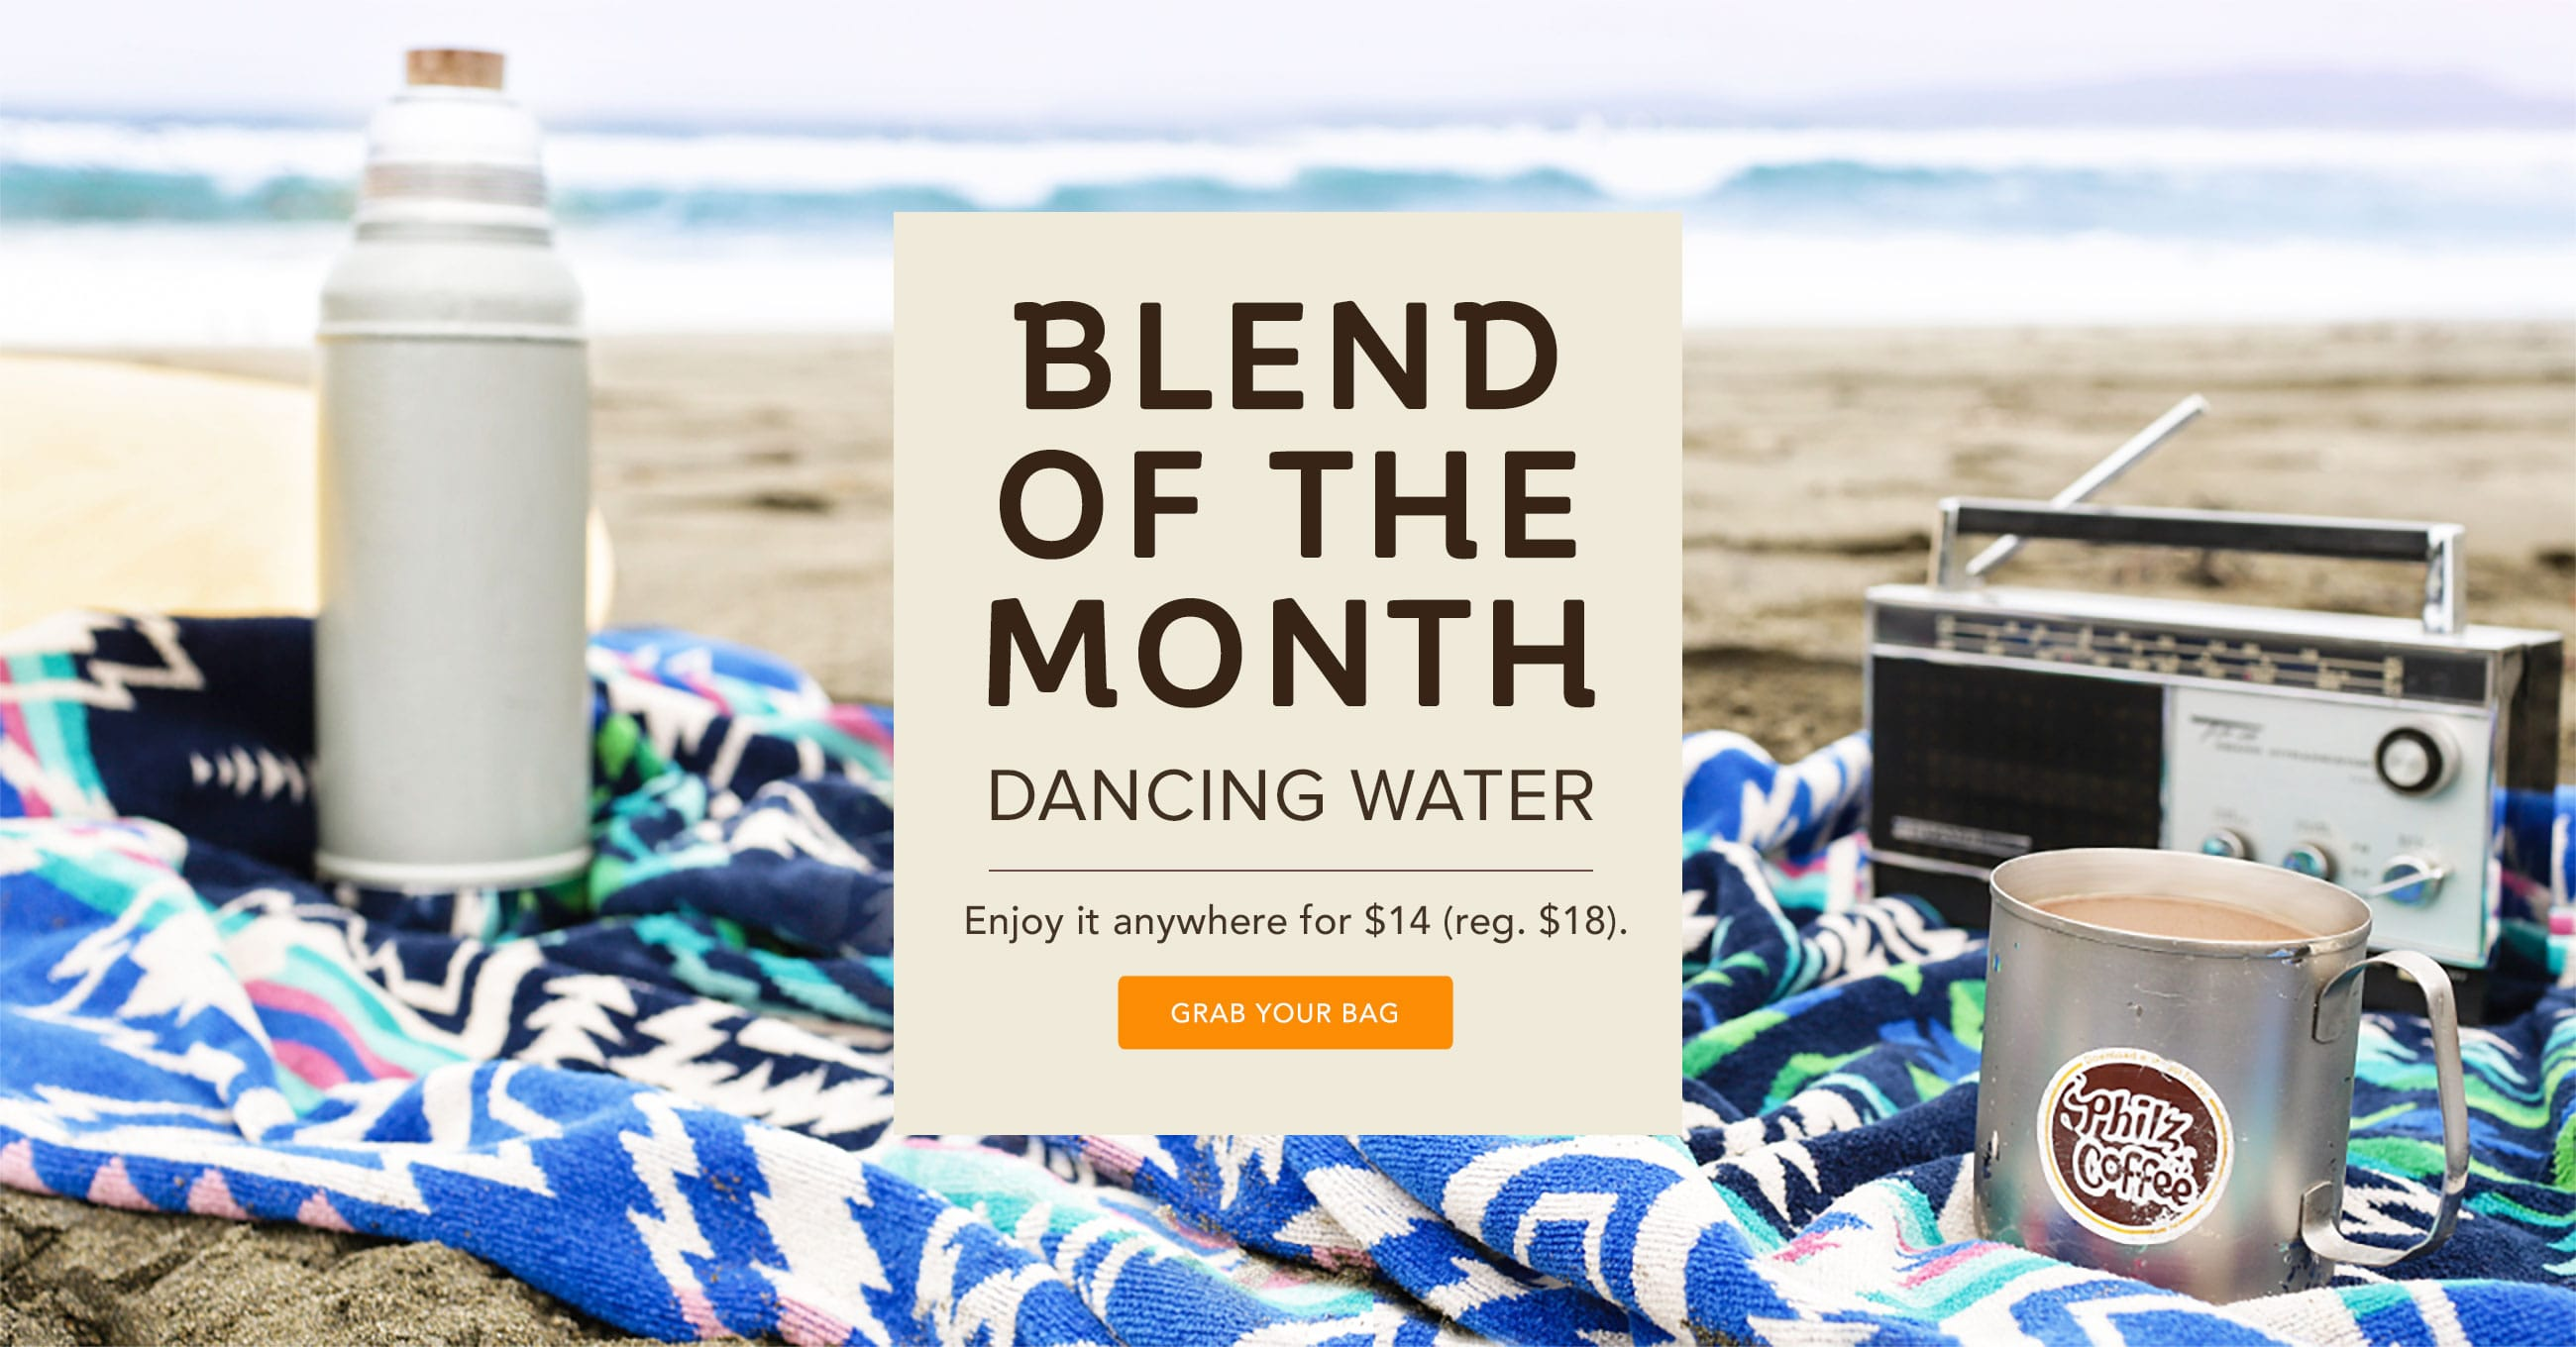 Our Blend of the Month is only $14 (reg. $18).